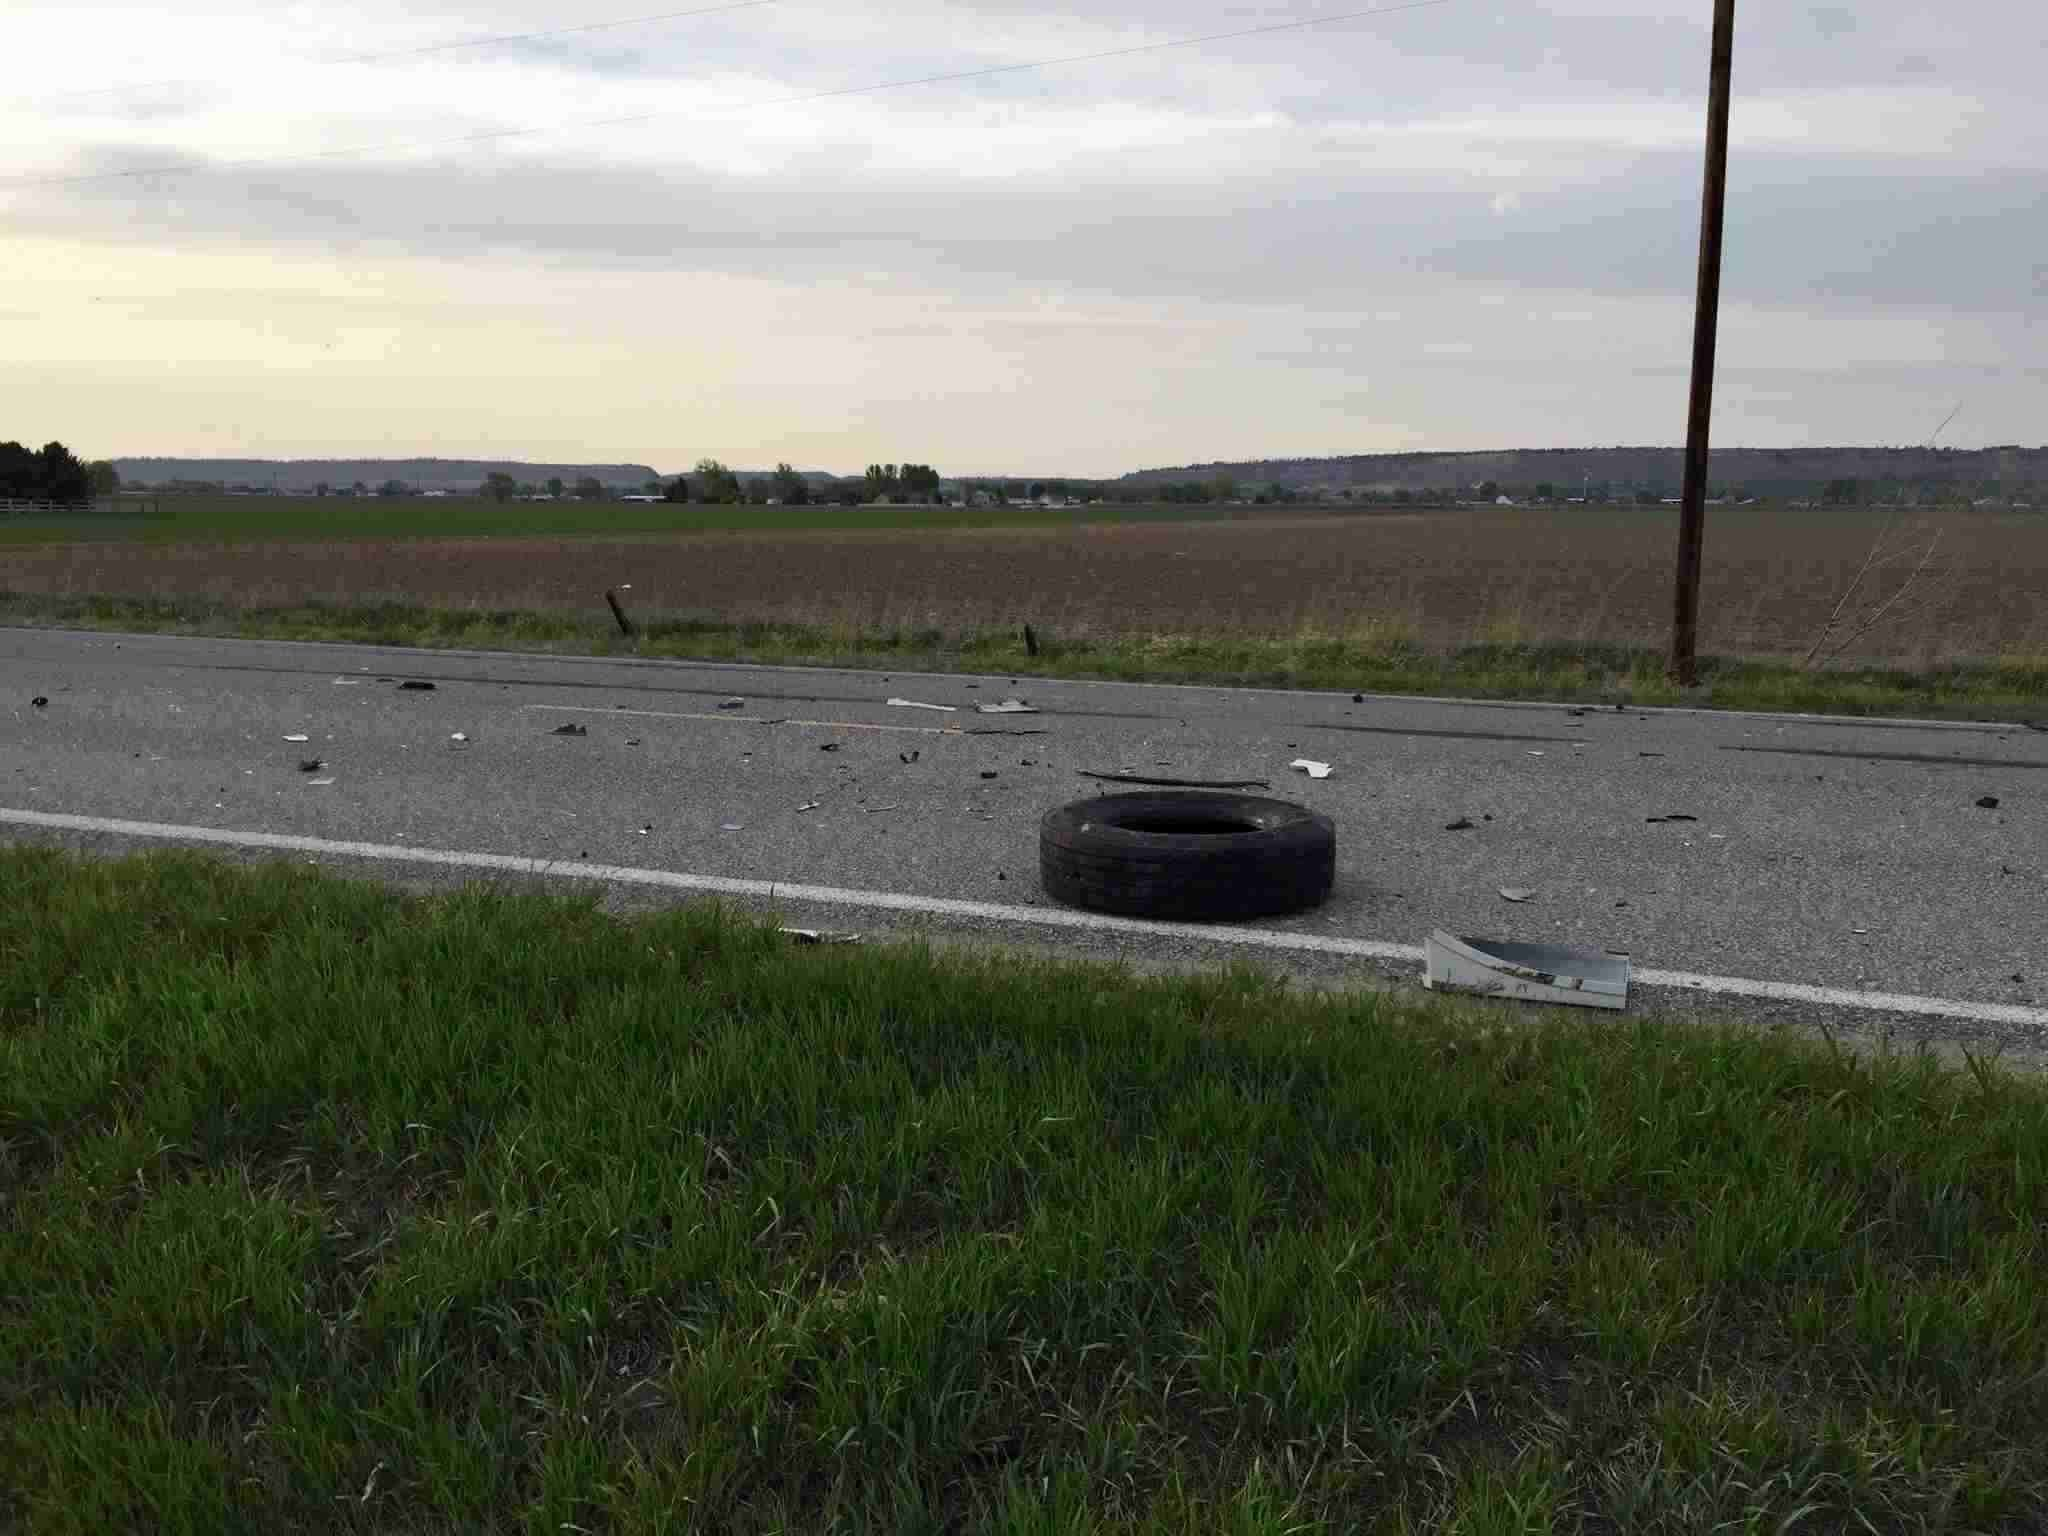 The crash dislodge the front tire of the semi-truck.